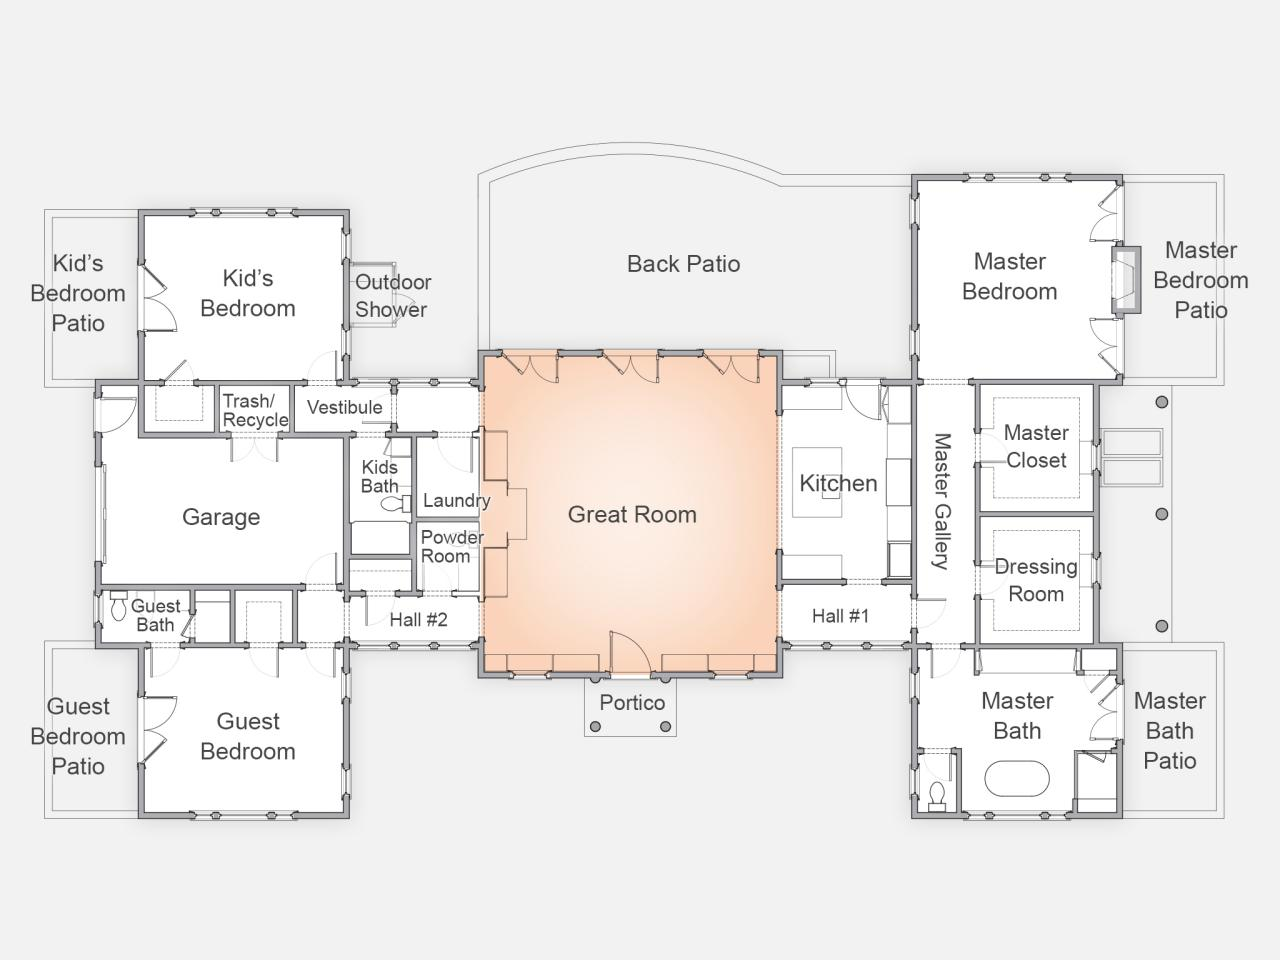 Hgtv dream home 2015 floor plan building hgtv dream home for Dream home blueprints